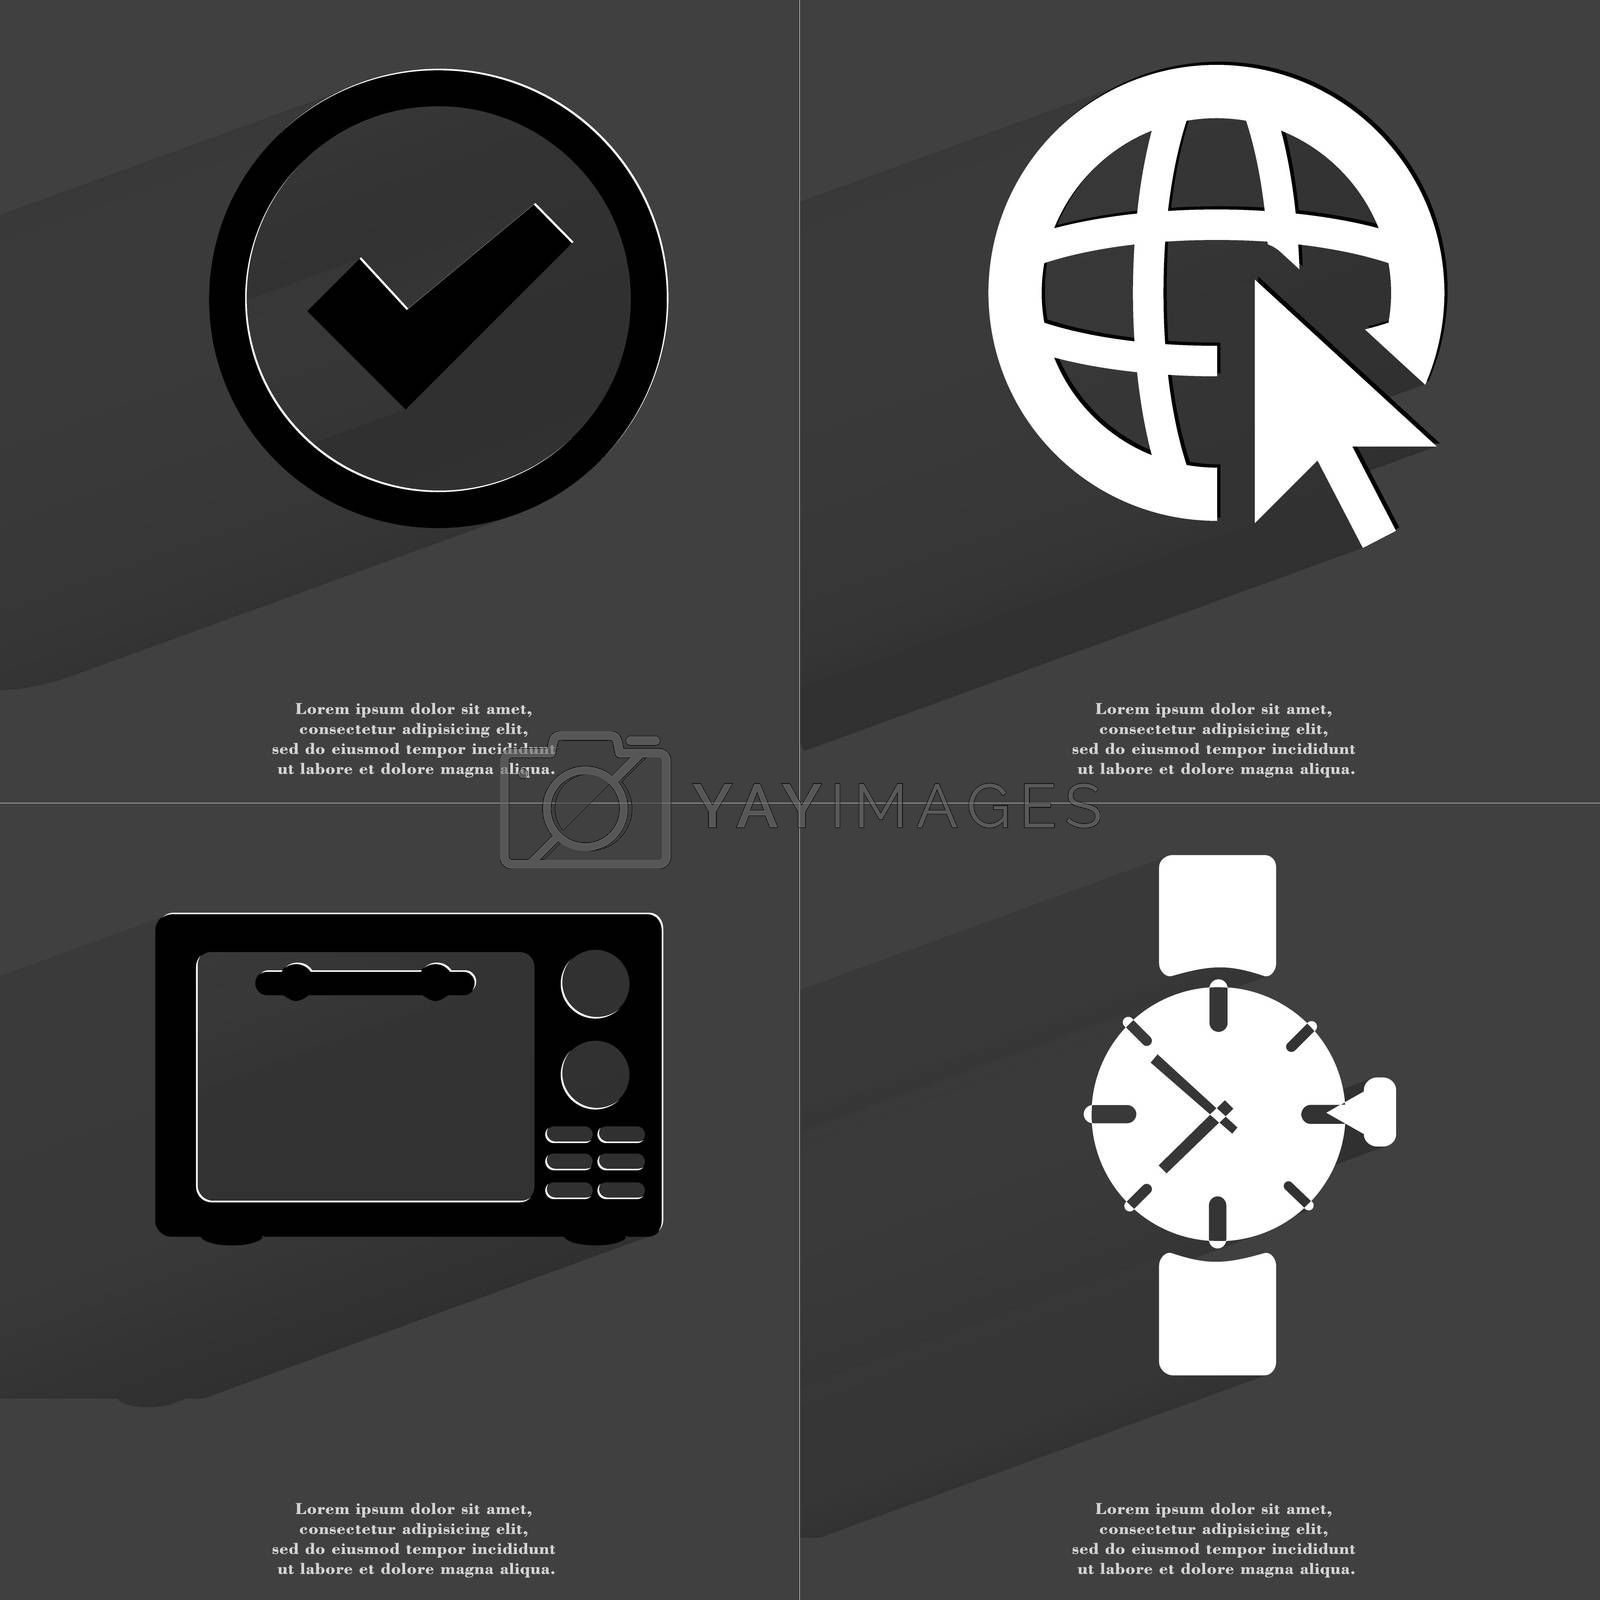 Royalty free image of Tick sign, Web icon cursor, Microwave, Clock. Symbols with long shadow. Flat design by serhii_lohvyniuk